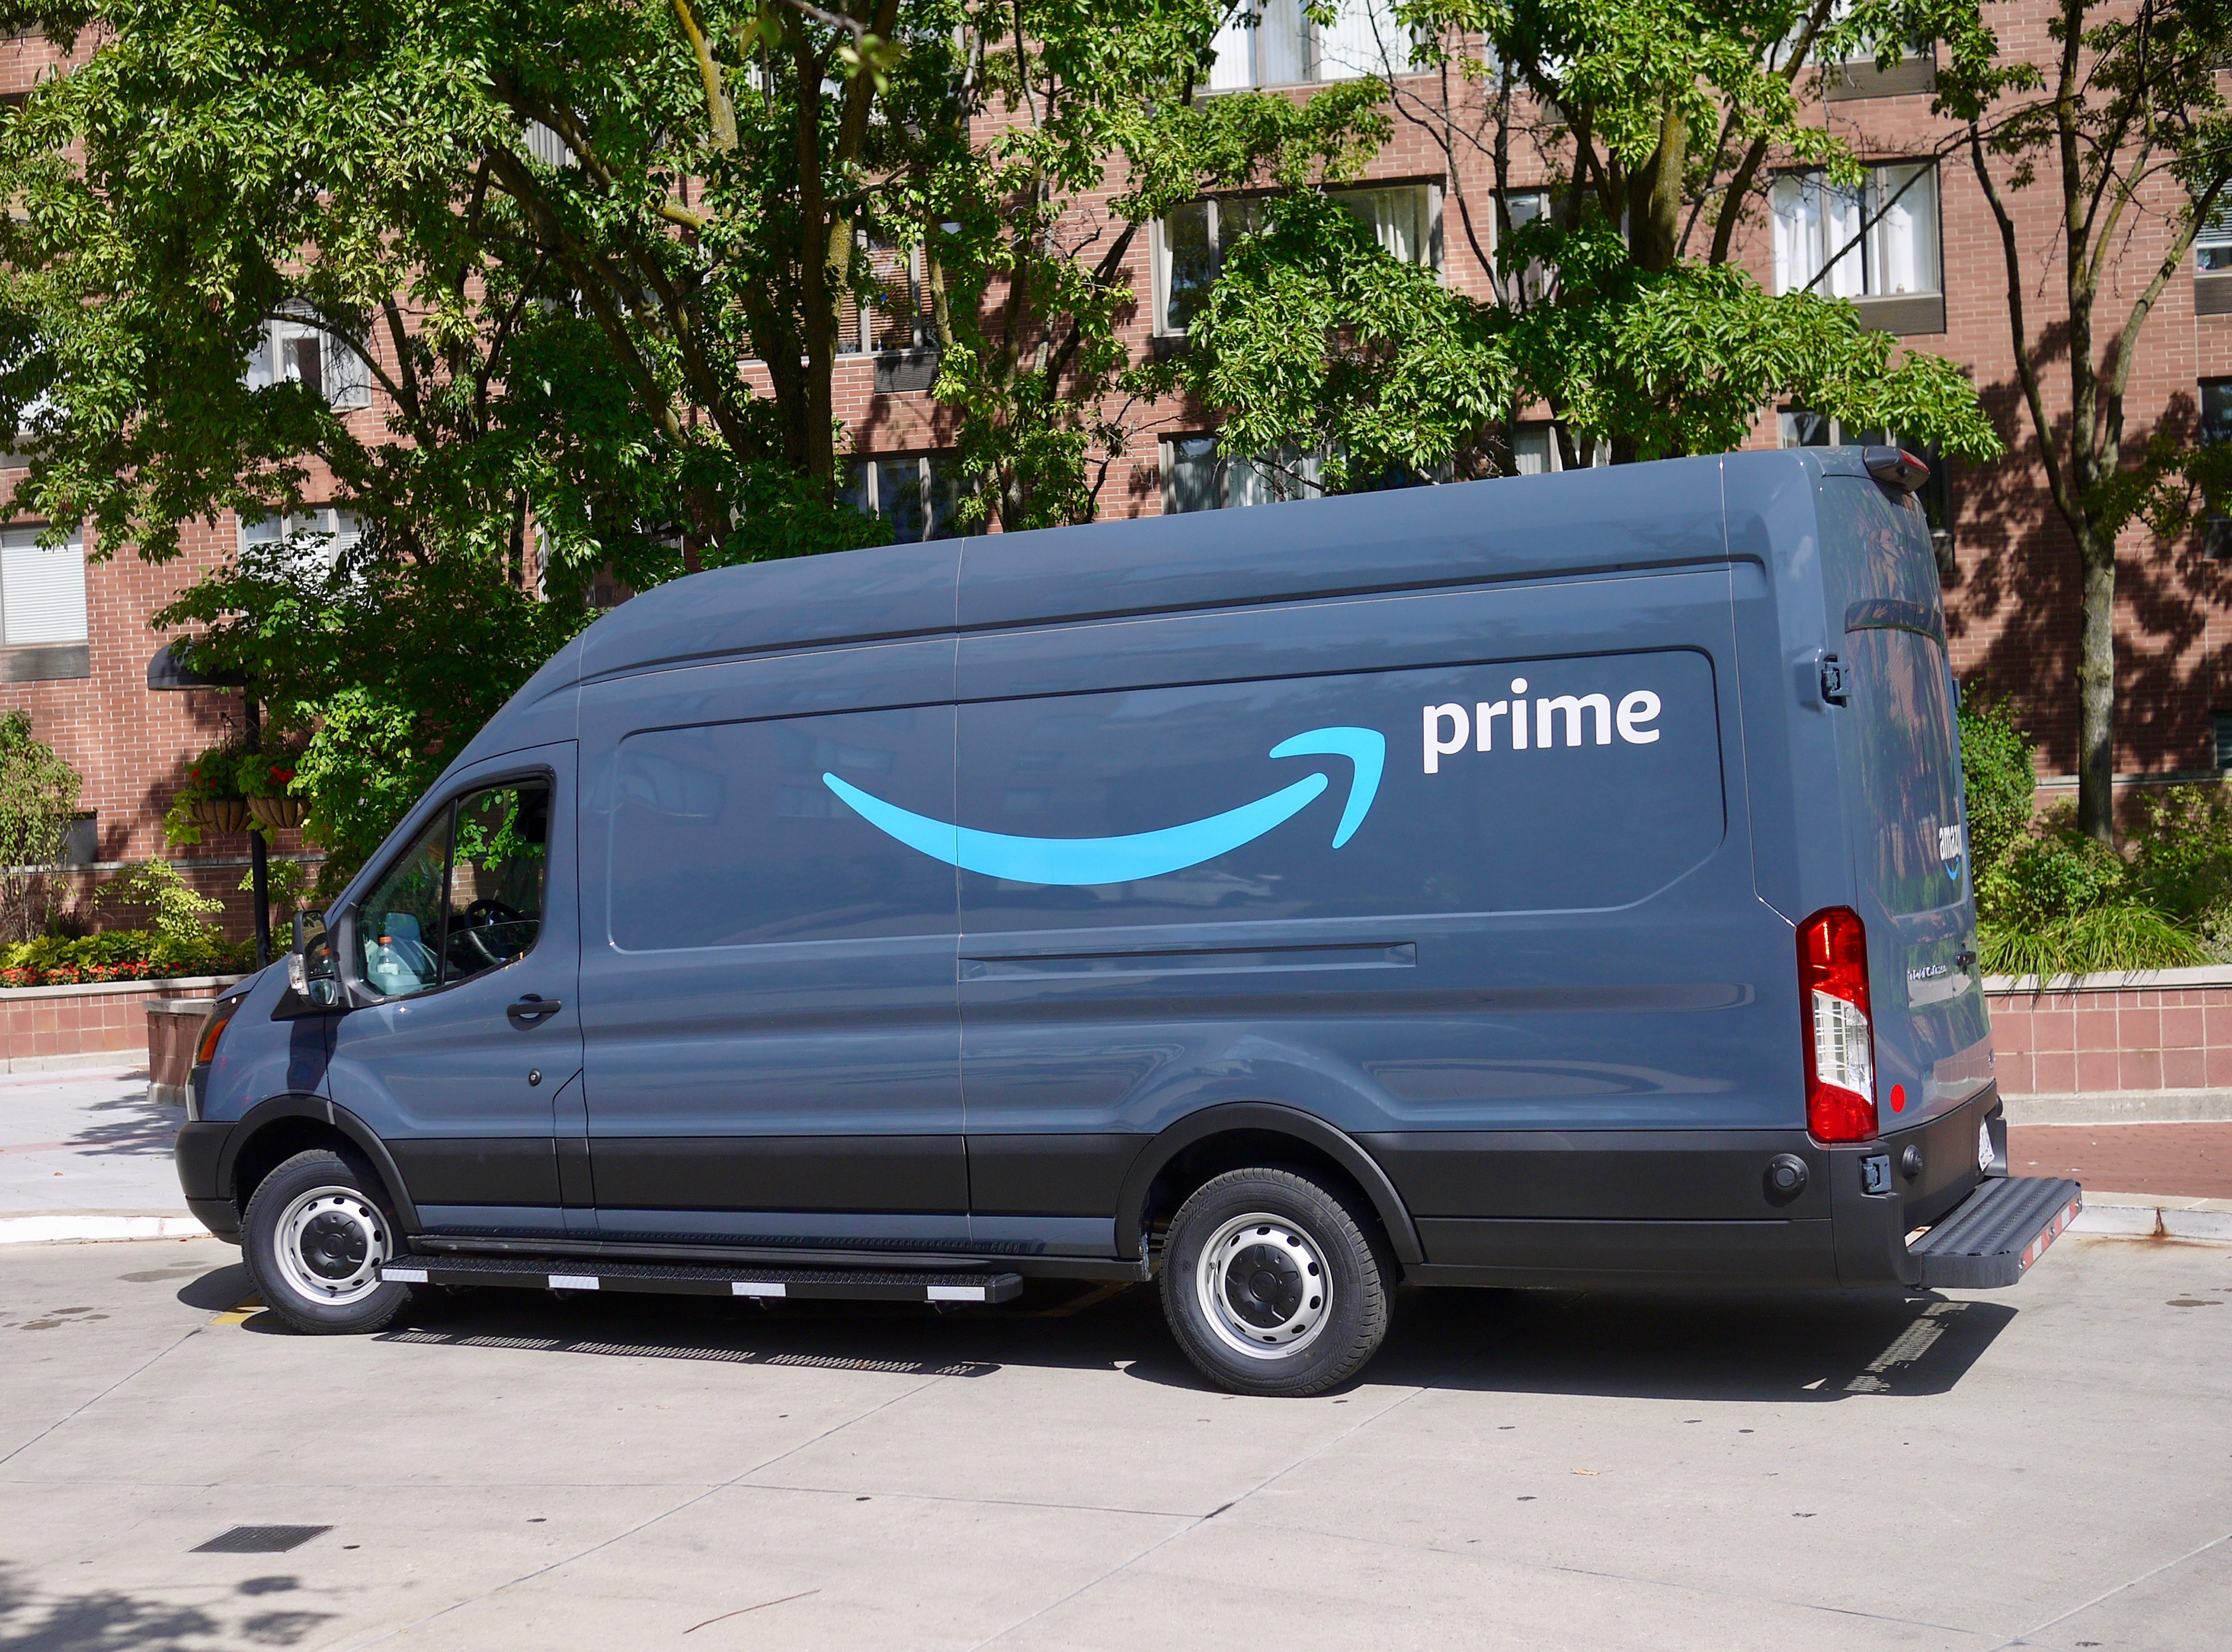 """An Amazon delivery van with the smile logo and the word """"prime"""" painted on the side."""